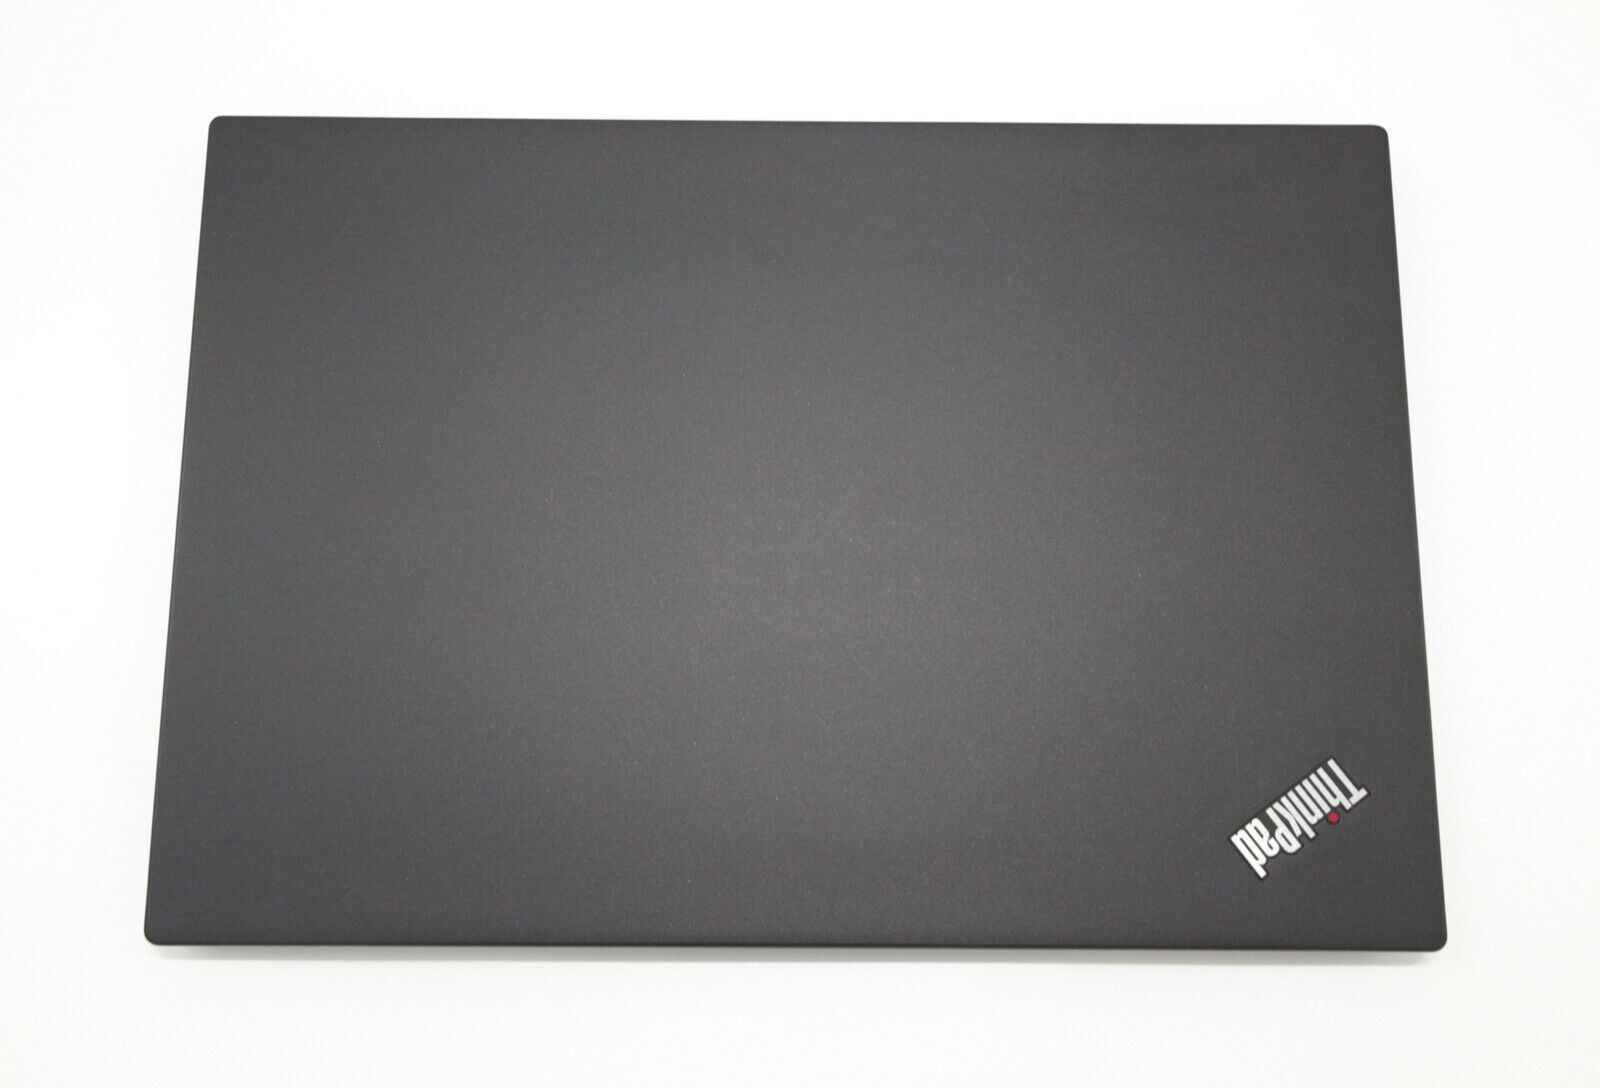 Lenovo Thinkpad T480s IPS Laptop: 8th Gen Core i7 512GB 16GB RAM LTE Warranty - CruiseTech